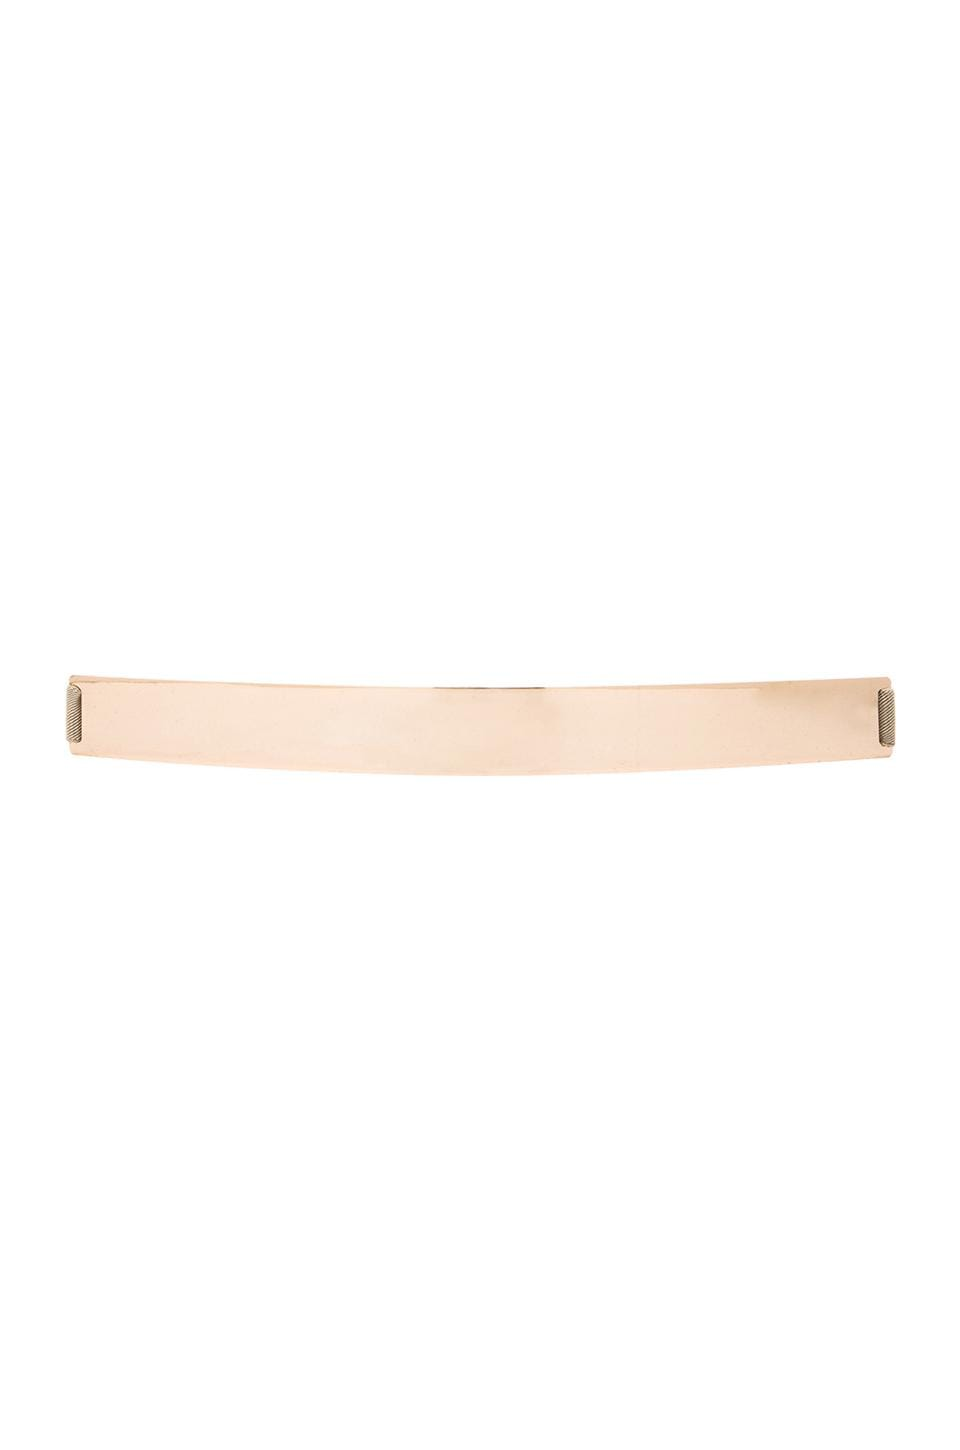 Lumier Thick Gold Banded Belt in Nude